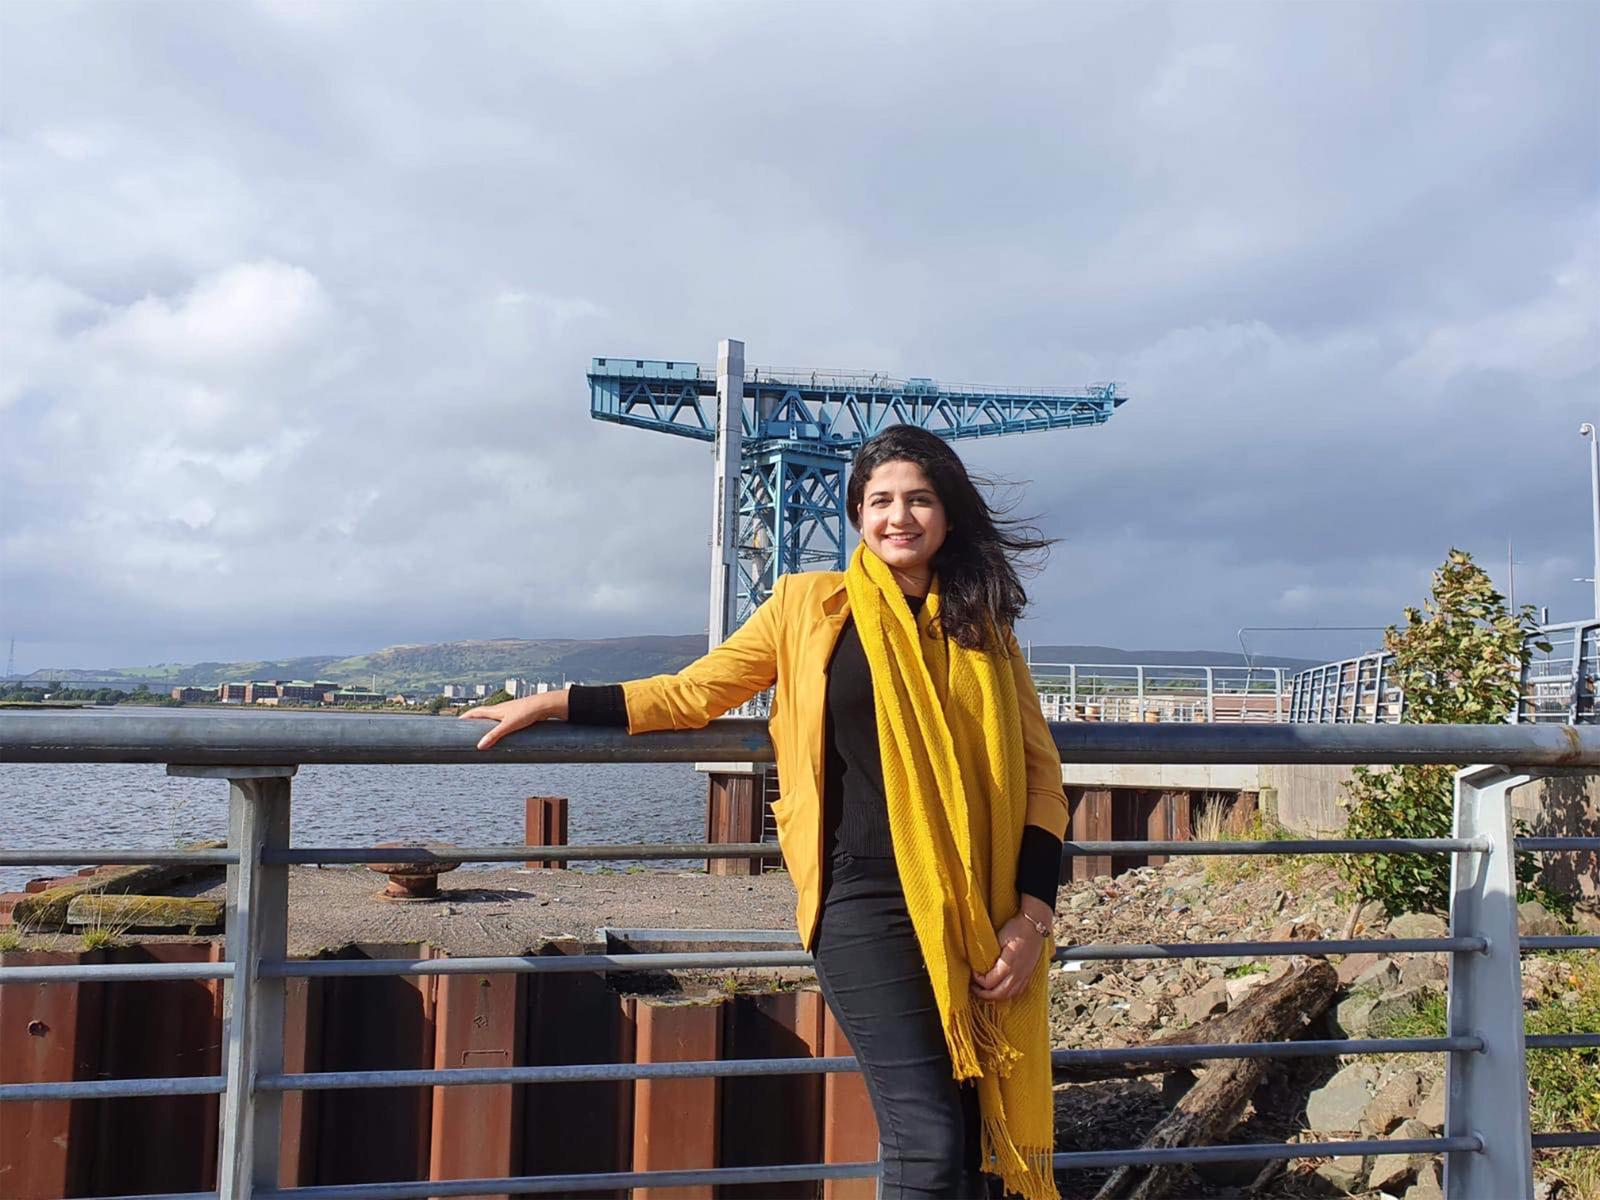 'Glasgow Girl' Roza Salih aims to be first refugee elected to Scottish Parliament